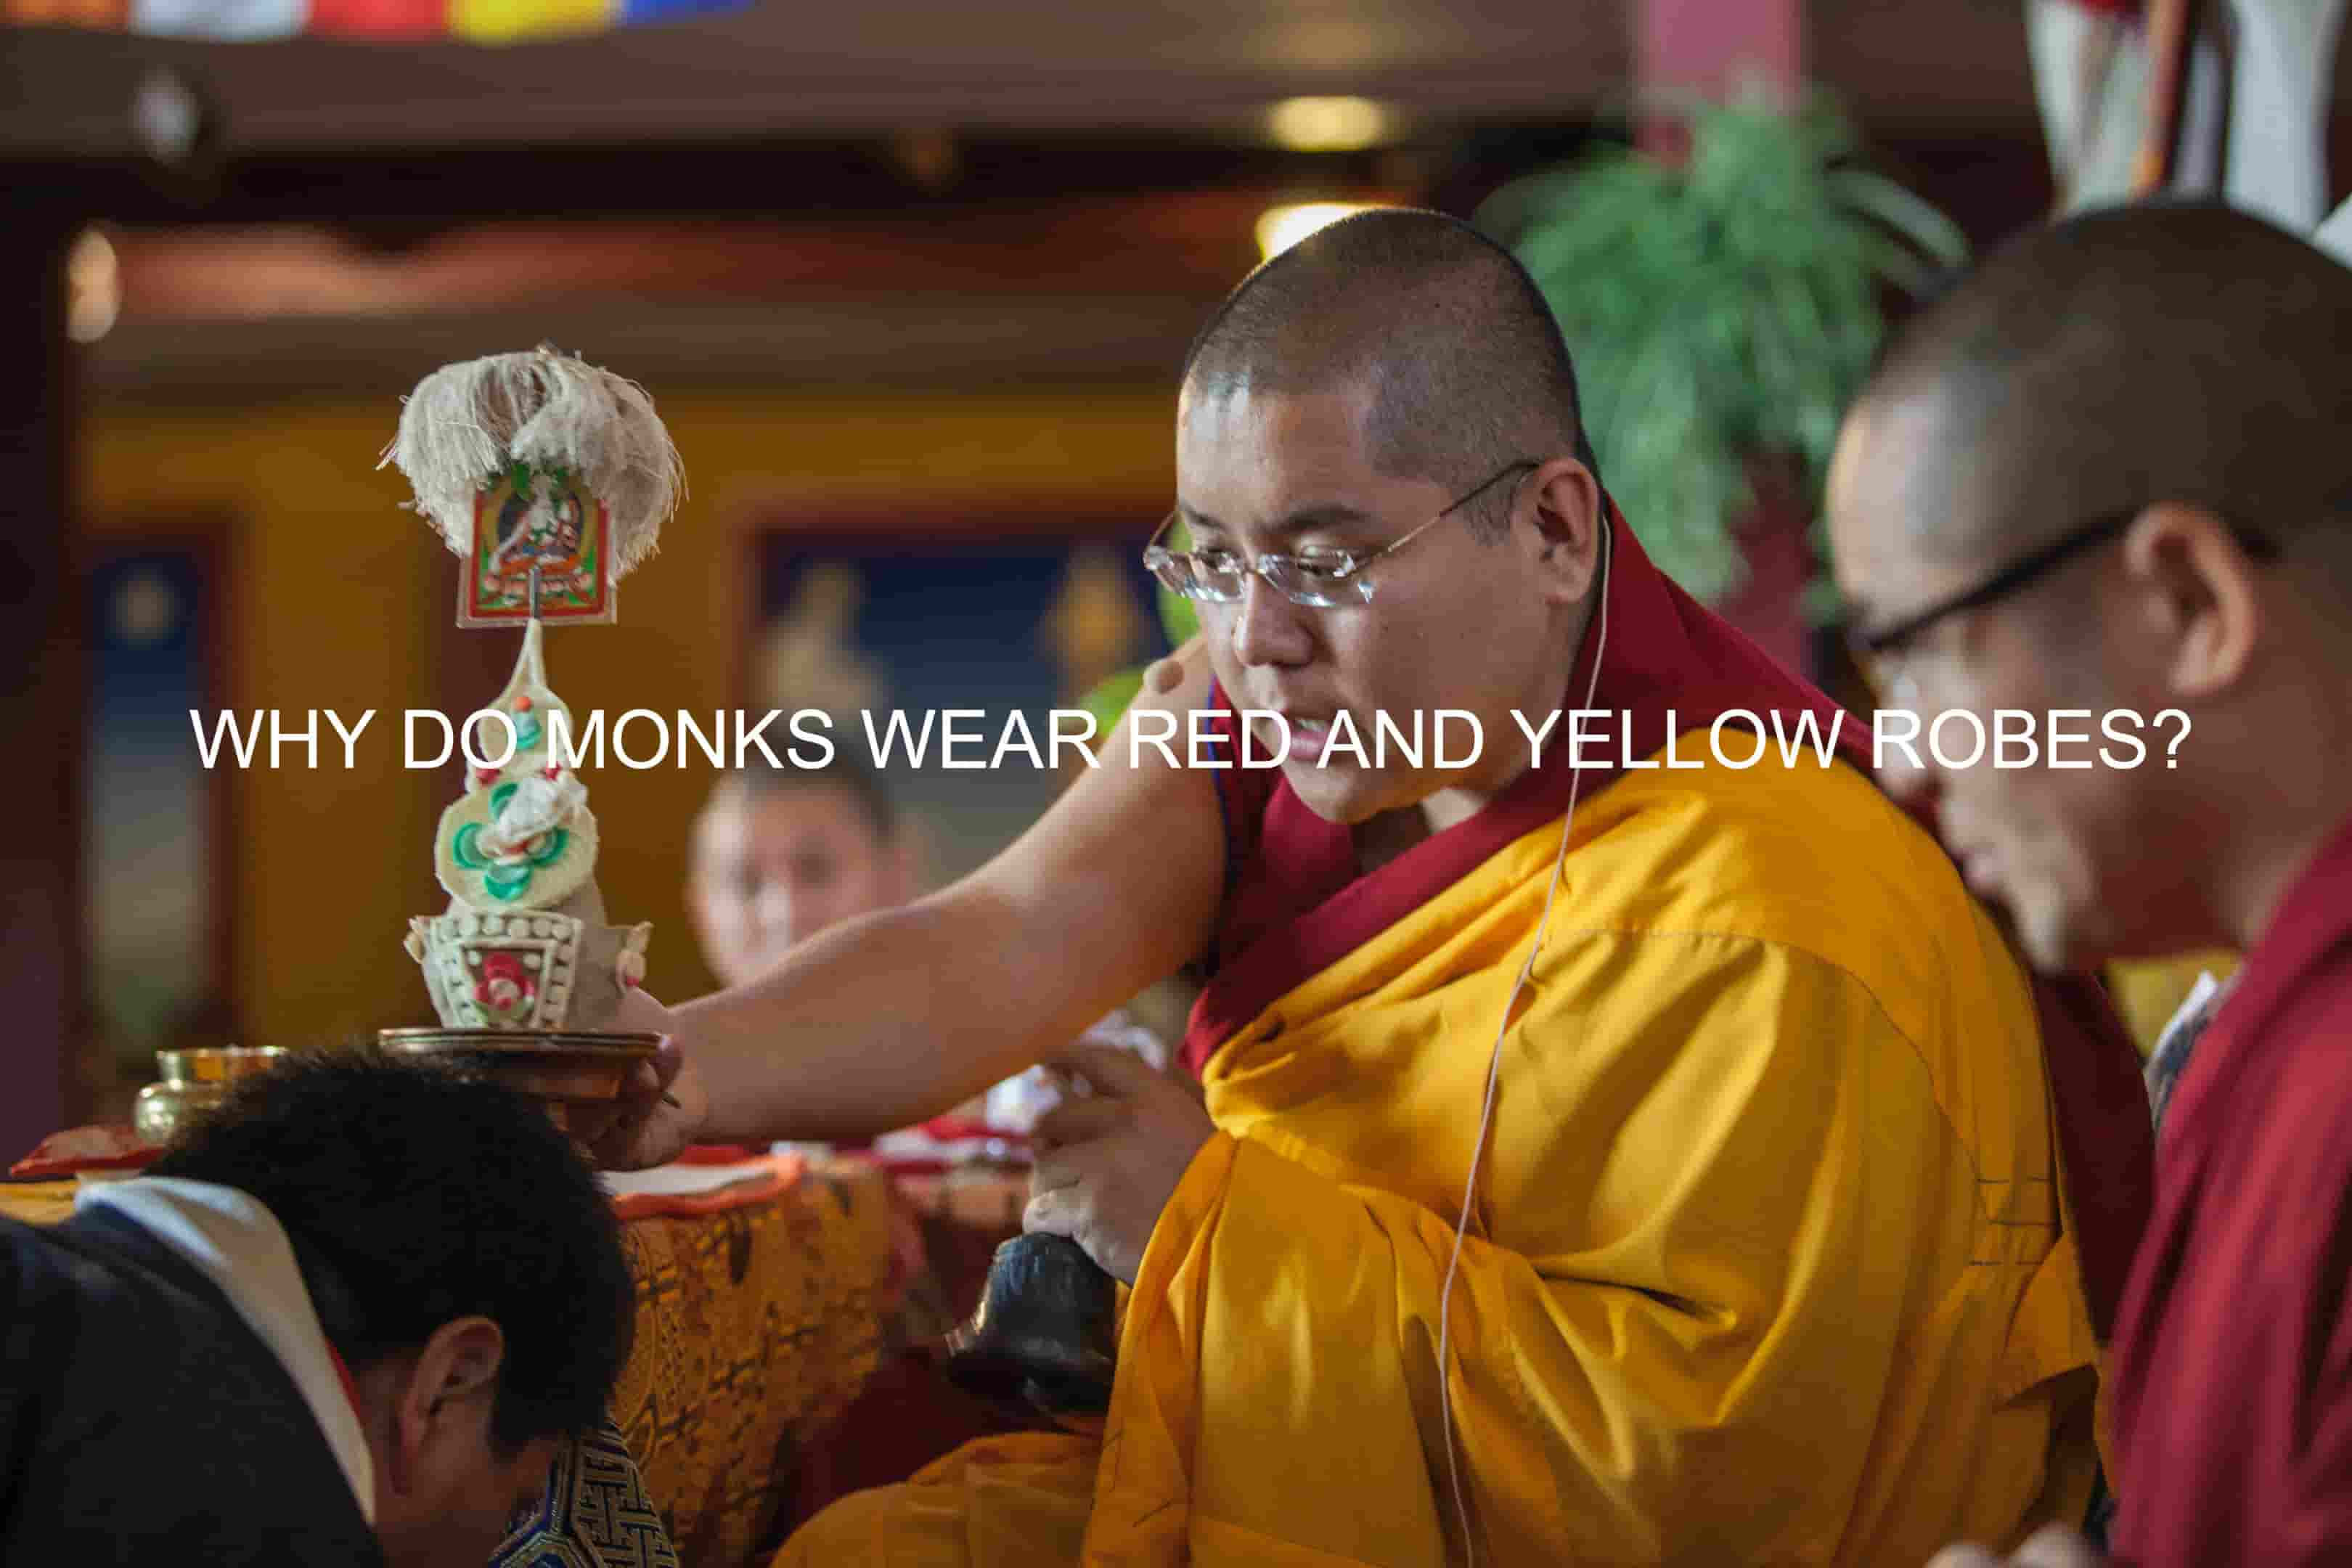 WHY DO MONKS WEAR RED AND YELLOW ROBES?